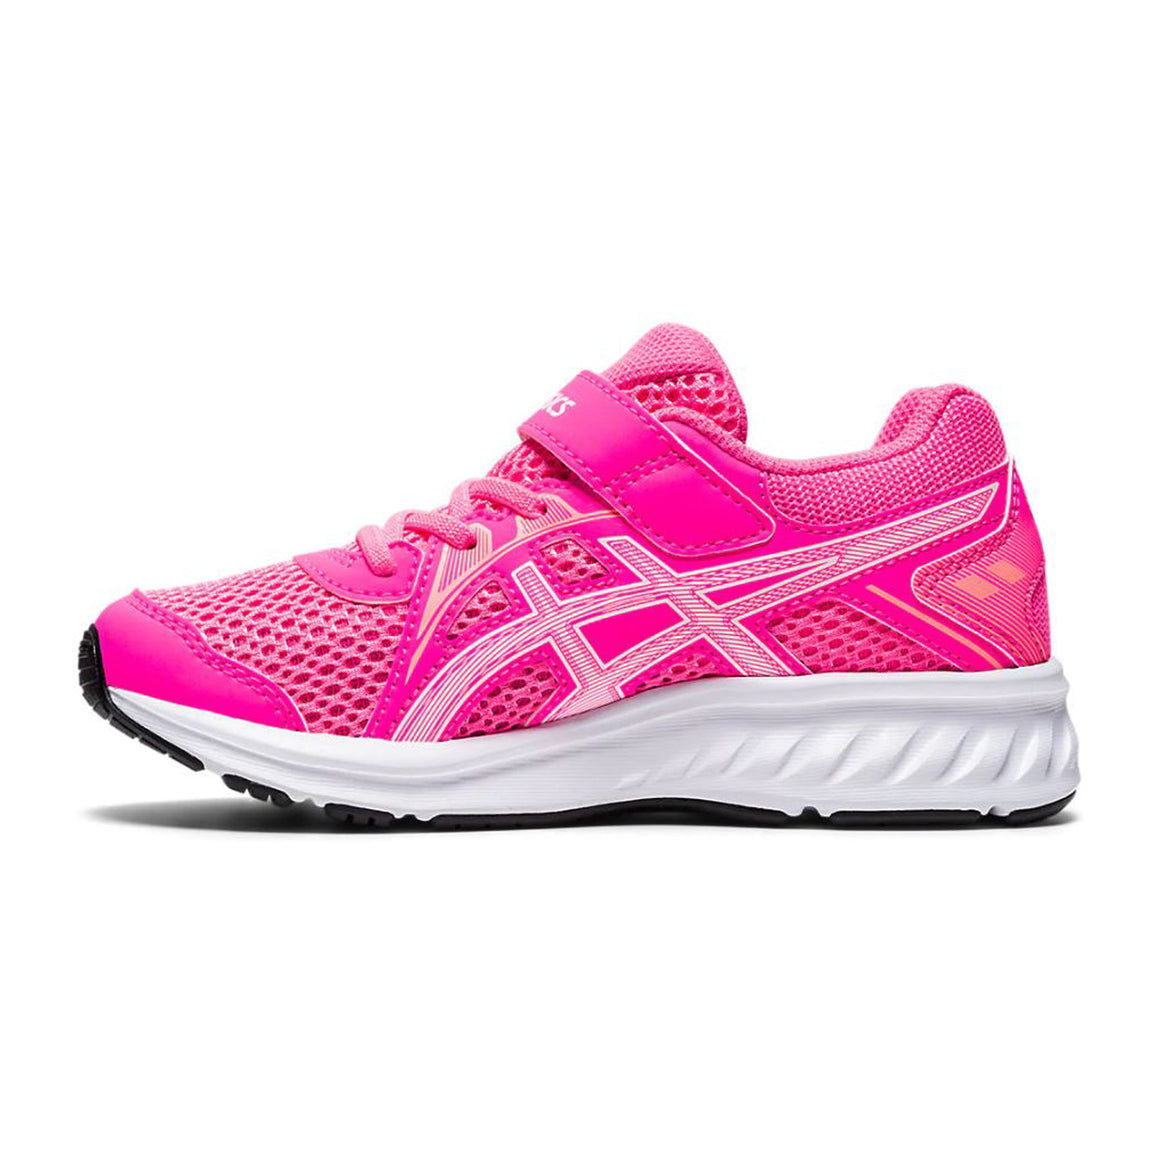 Jolt 2 PS Running Shoes for Kids in Hot Pink/White